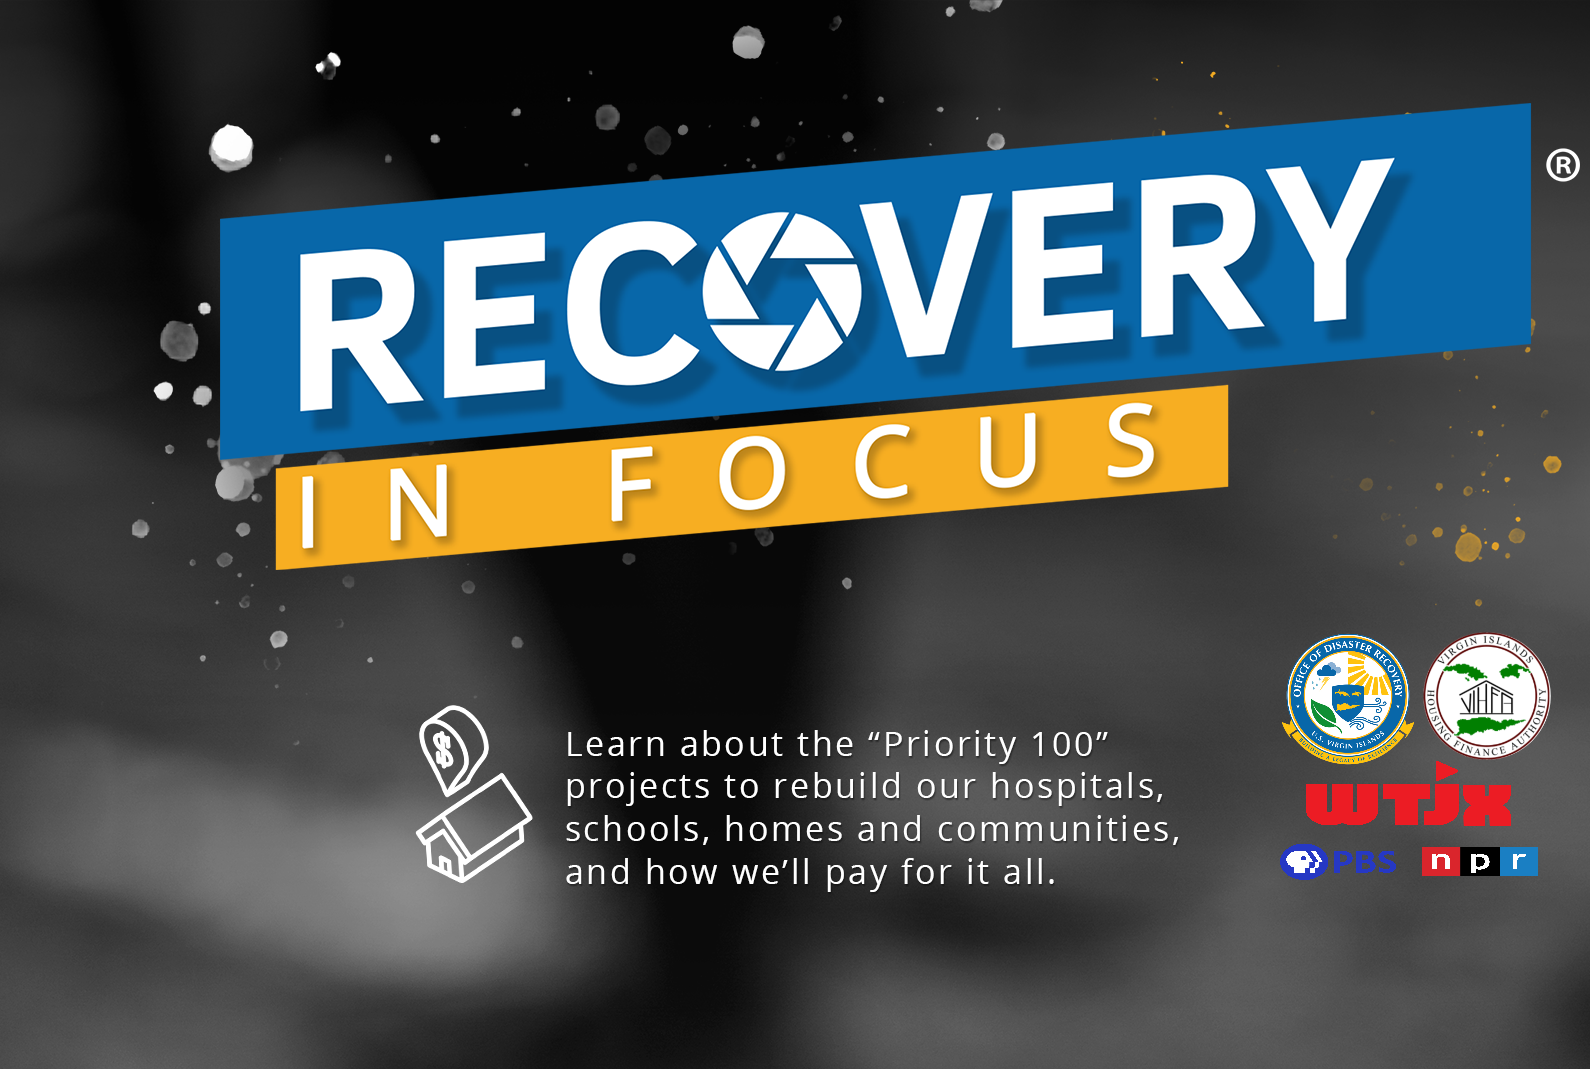 https://video.wtjx.org/show/recovery-focus/